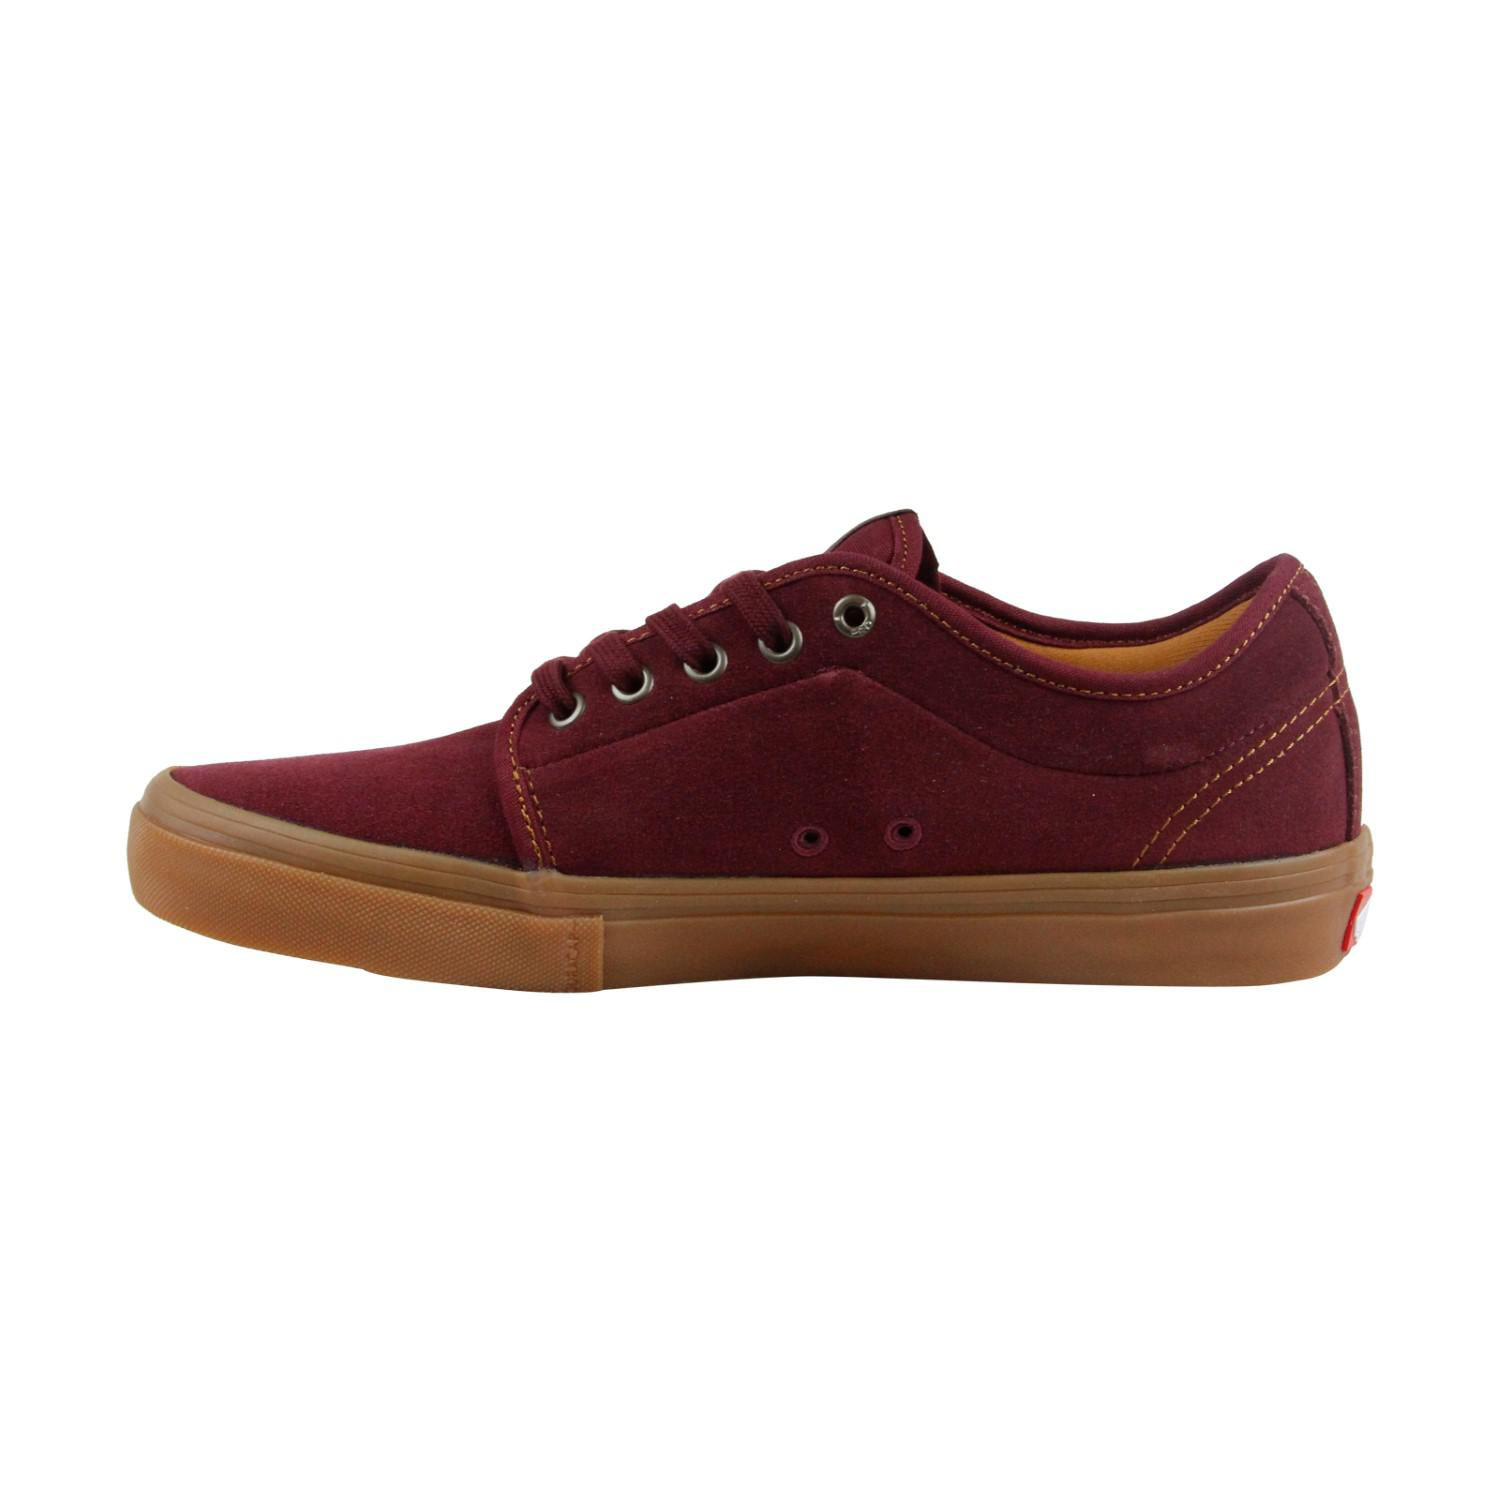 638b609d2ef Lyst - Vans Chukka Low Pro Port Gum Mens Lace Up Sneakers in Red for Men